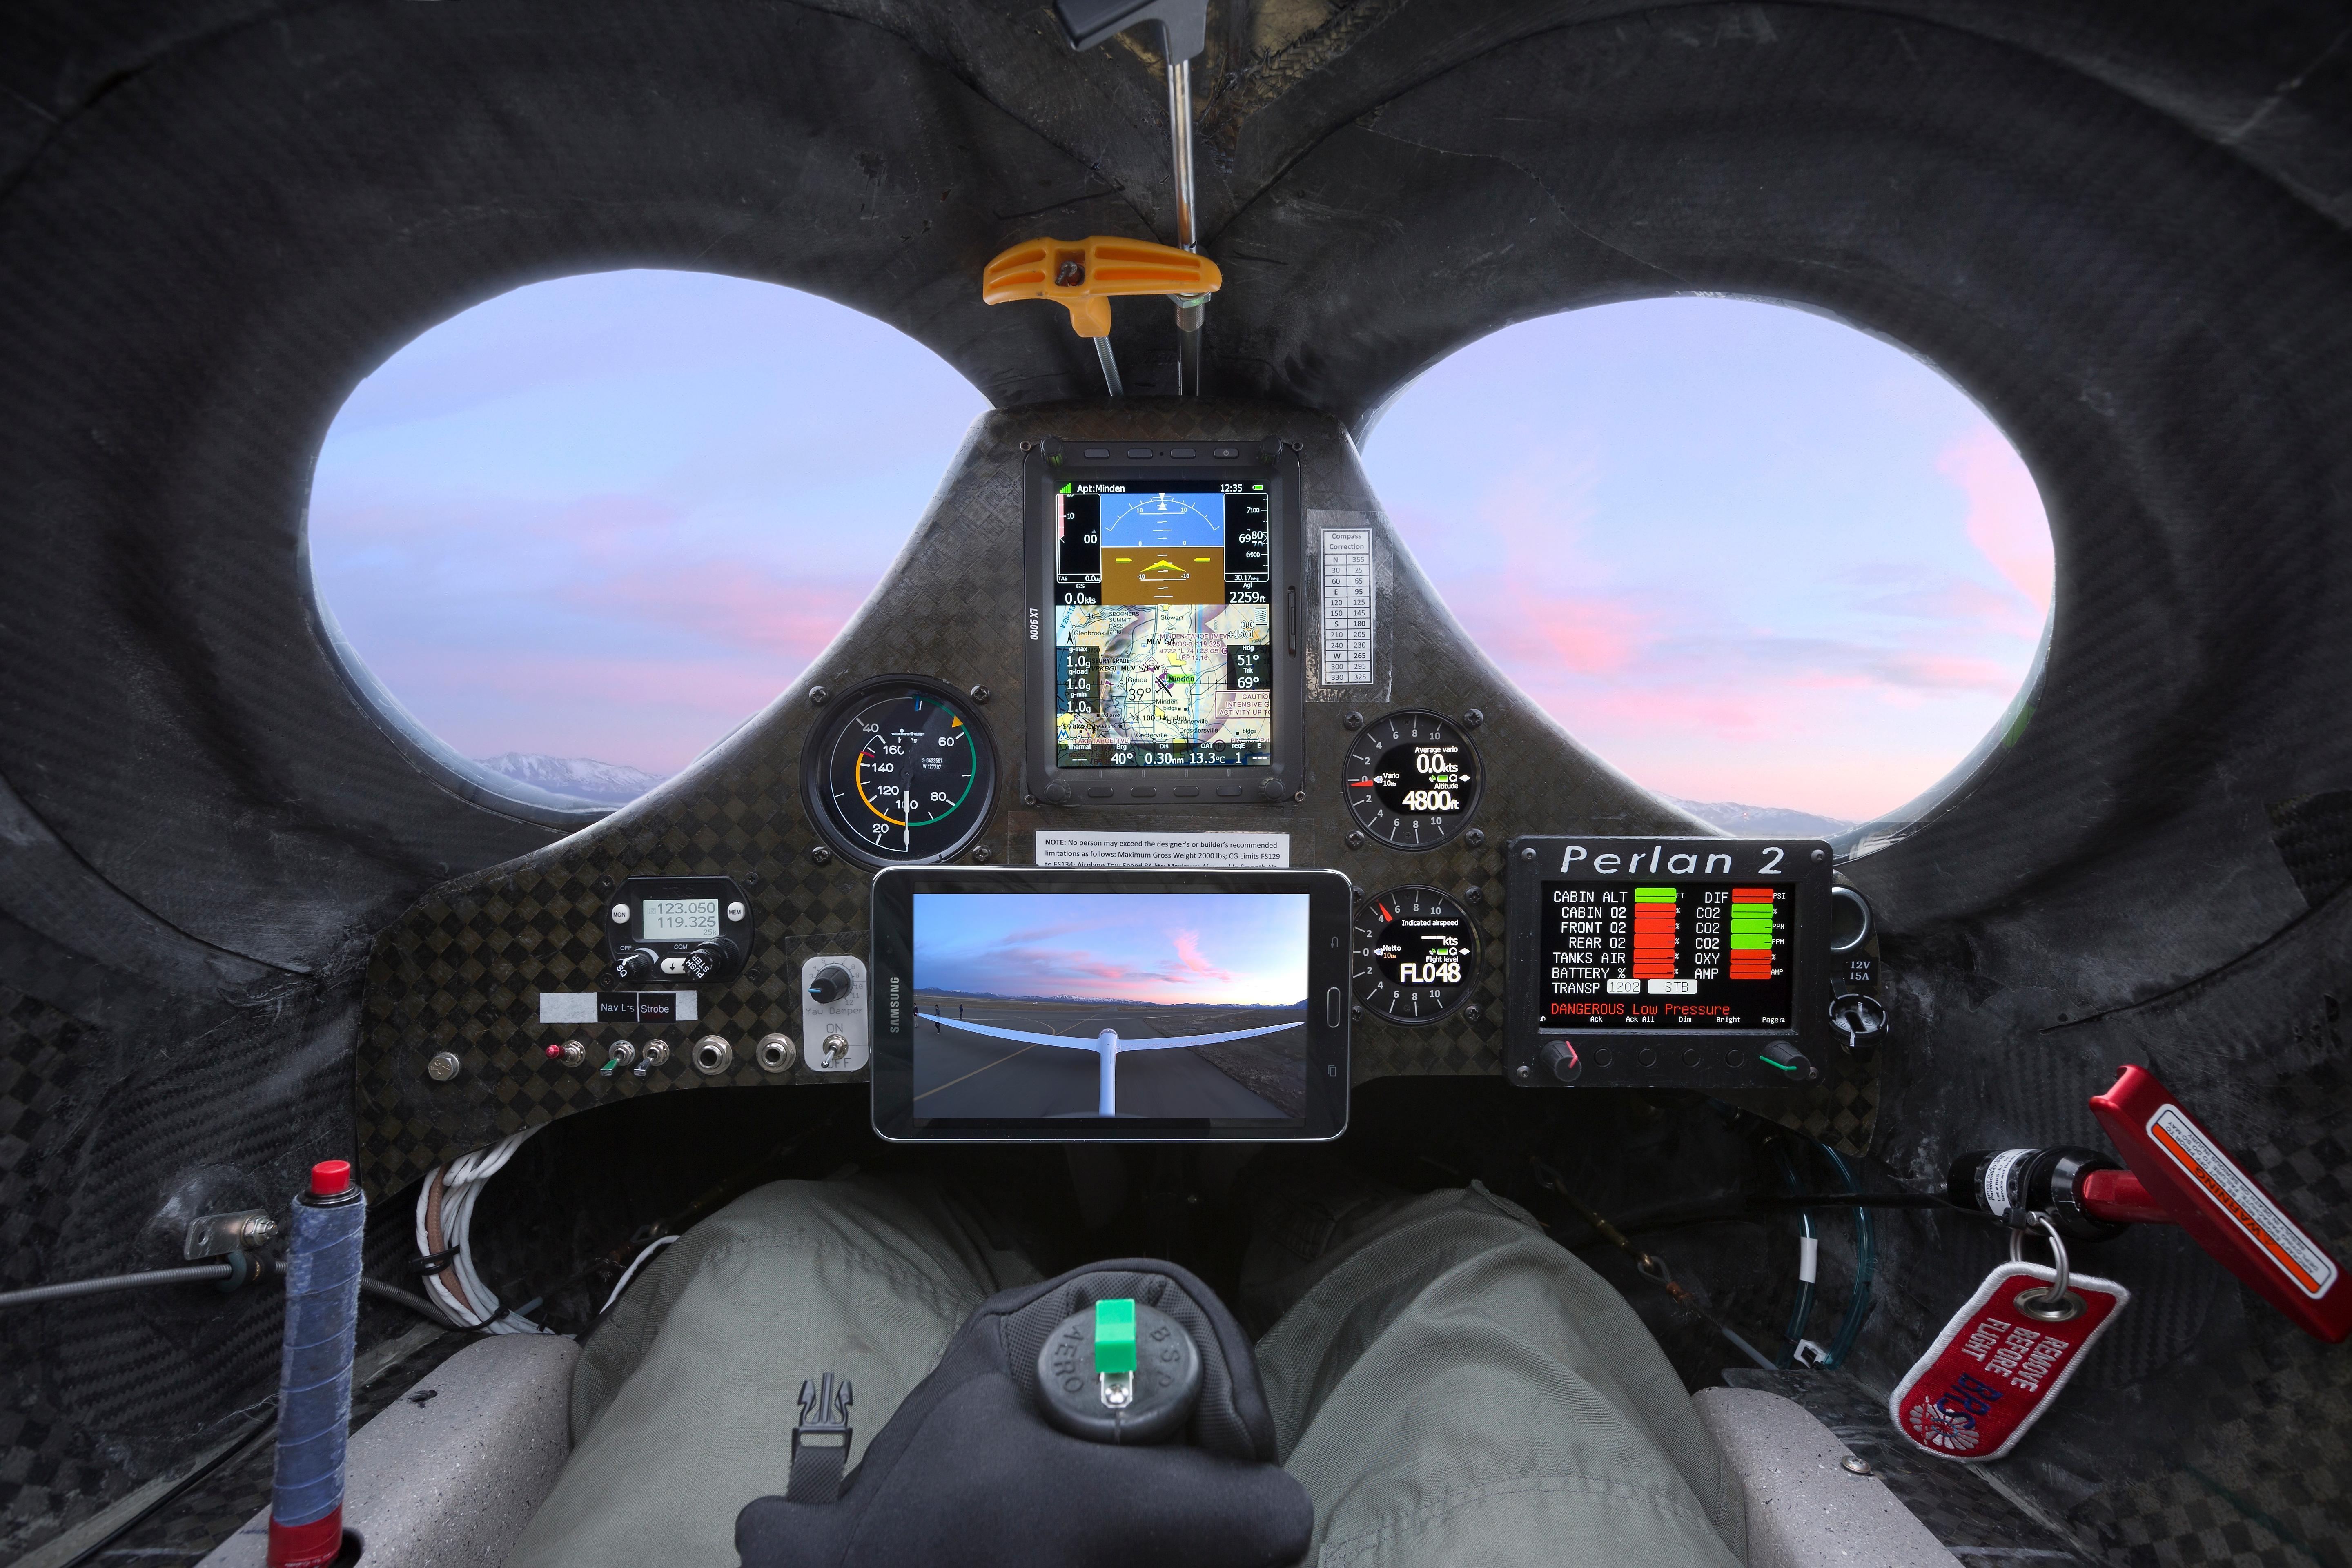 Perlan 2's austere forward cockpit